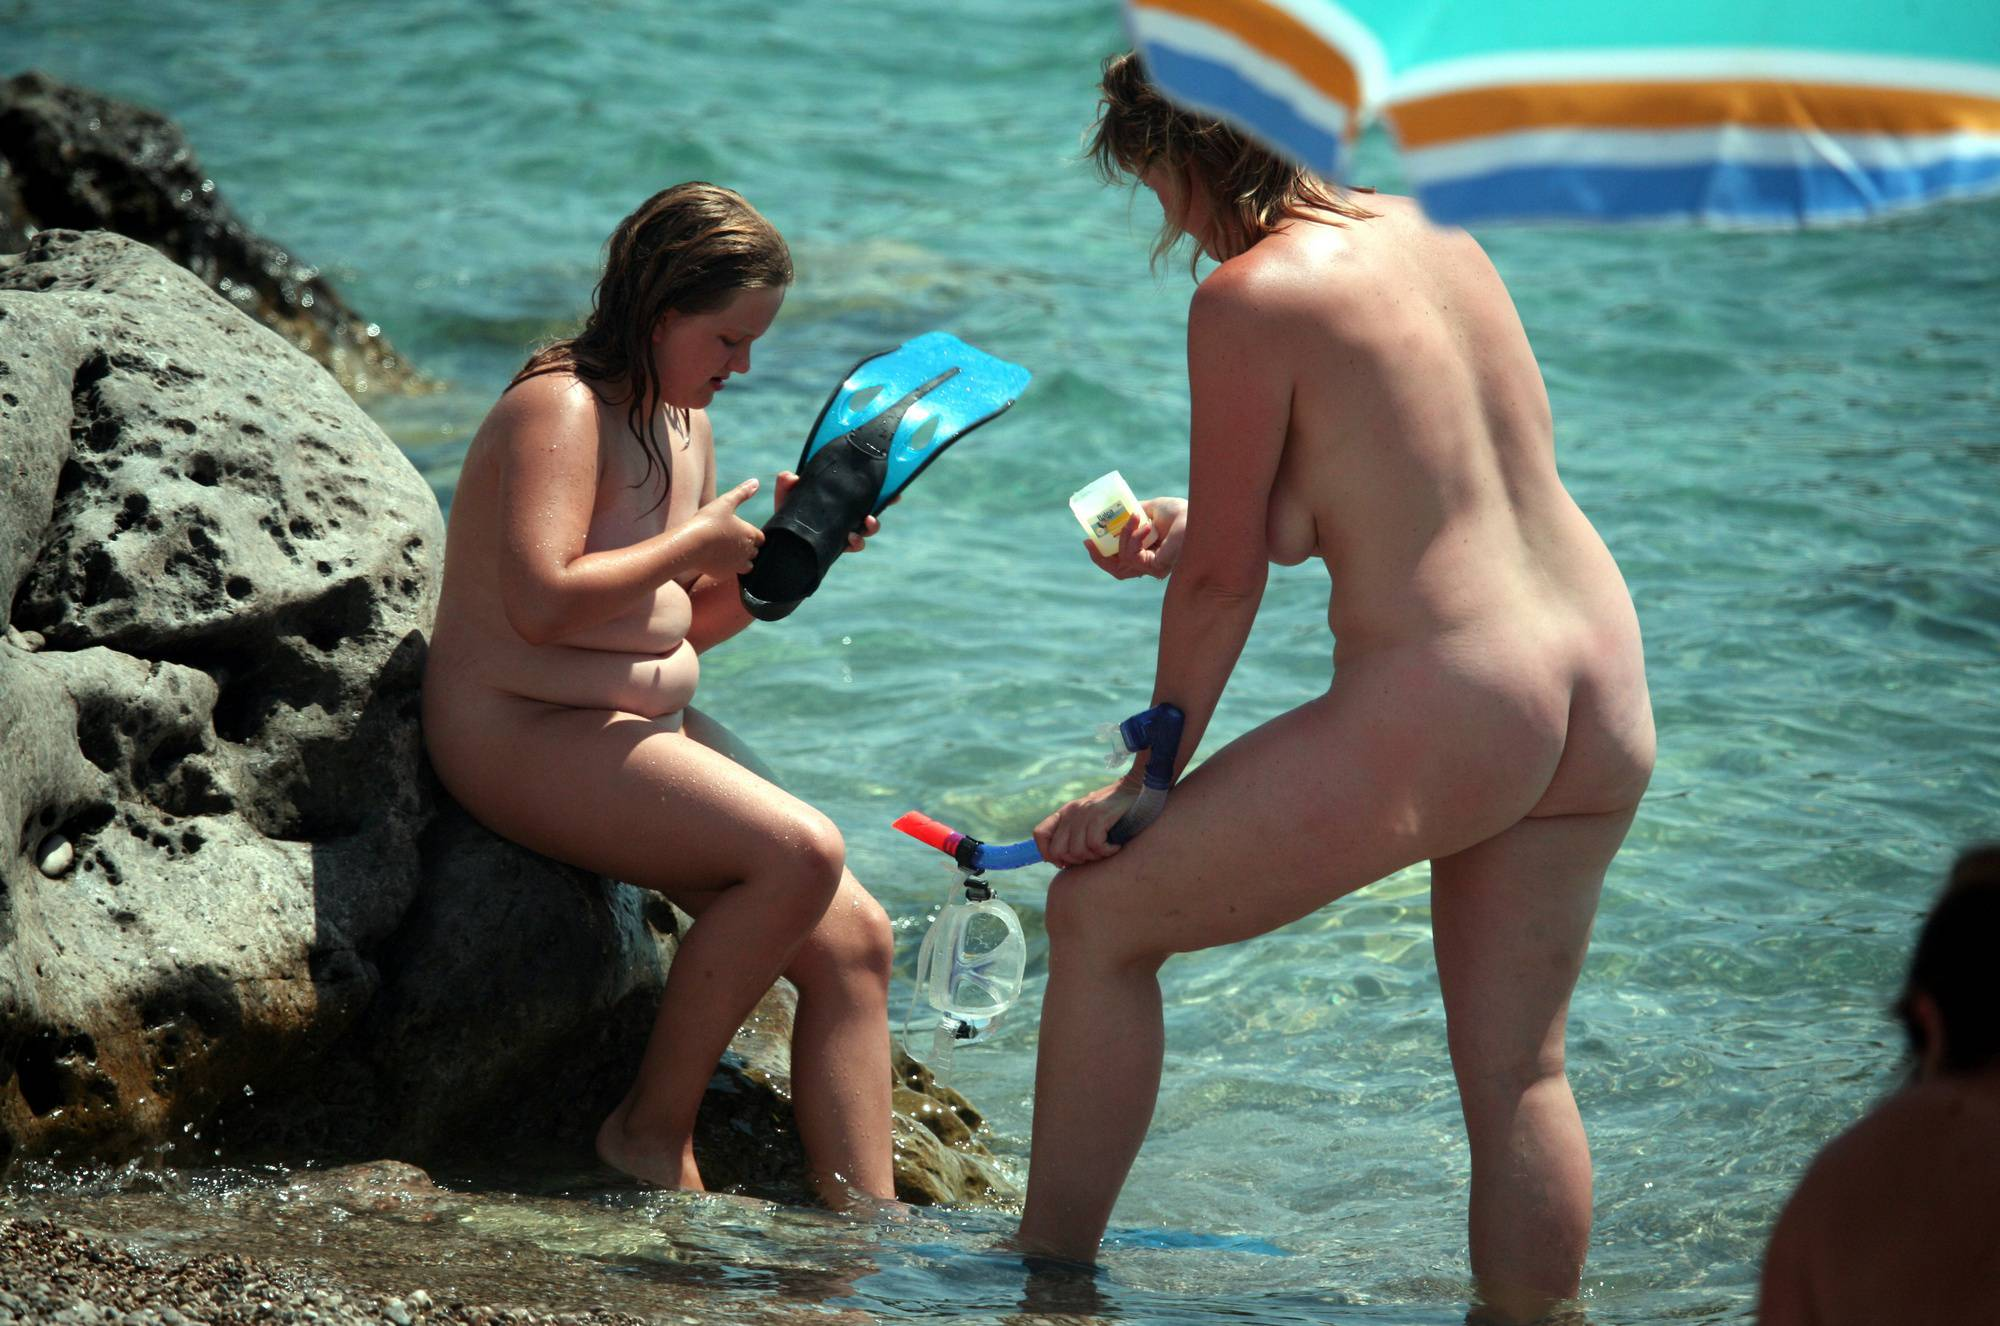 Nudist Pictures Putting on the Scuba Gear - 2